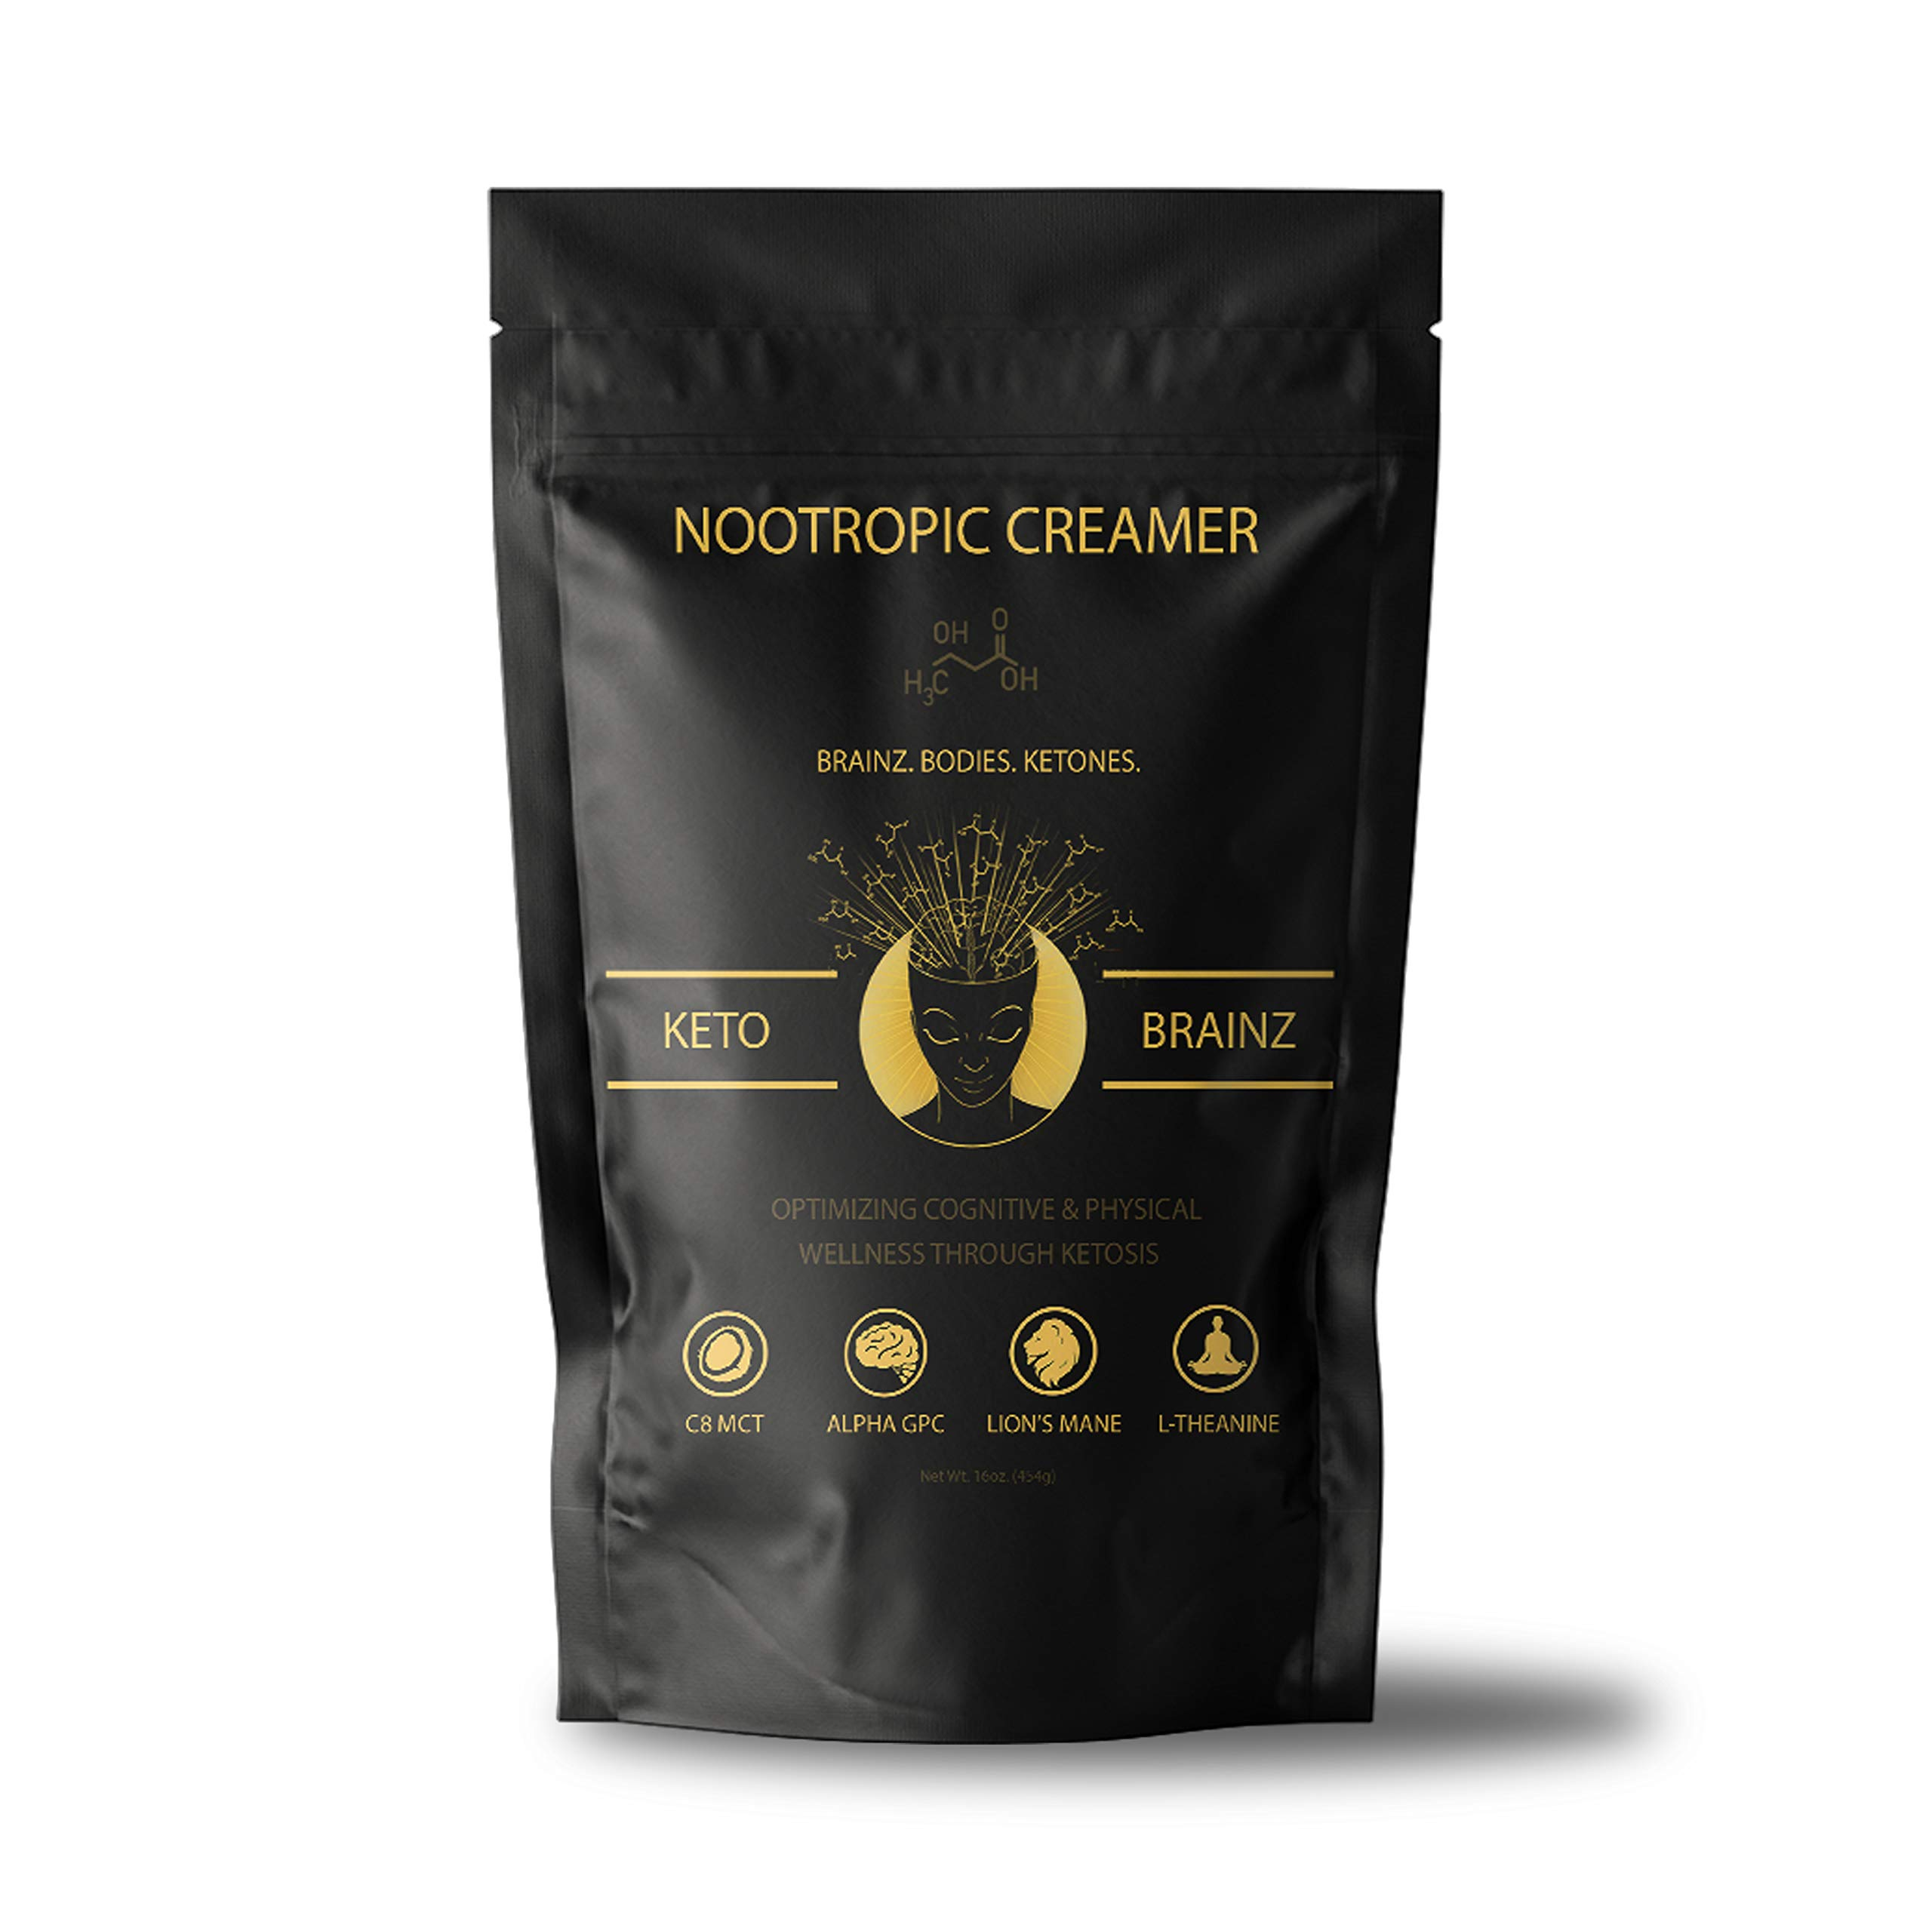 Keto Brainz C8 MCT based Nootropic Keto Creamer - With Lion's Mane, AlphaGPC & L-Theanine this is the ultimate nootropic ketogenic stack! 16oz. 30 Servings by Keto Brainz